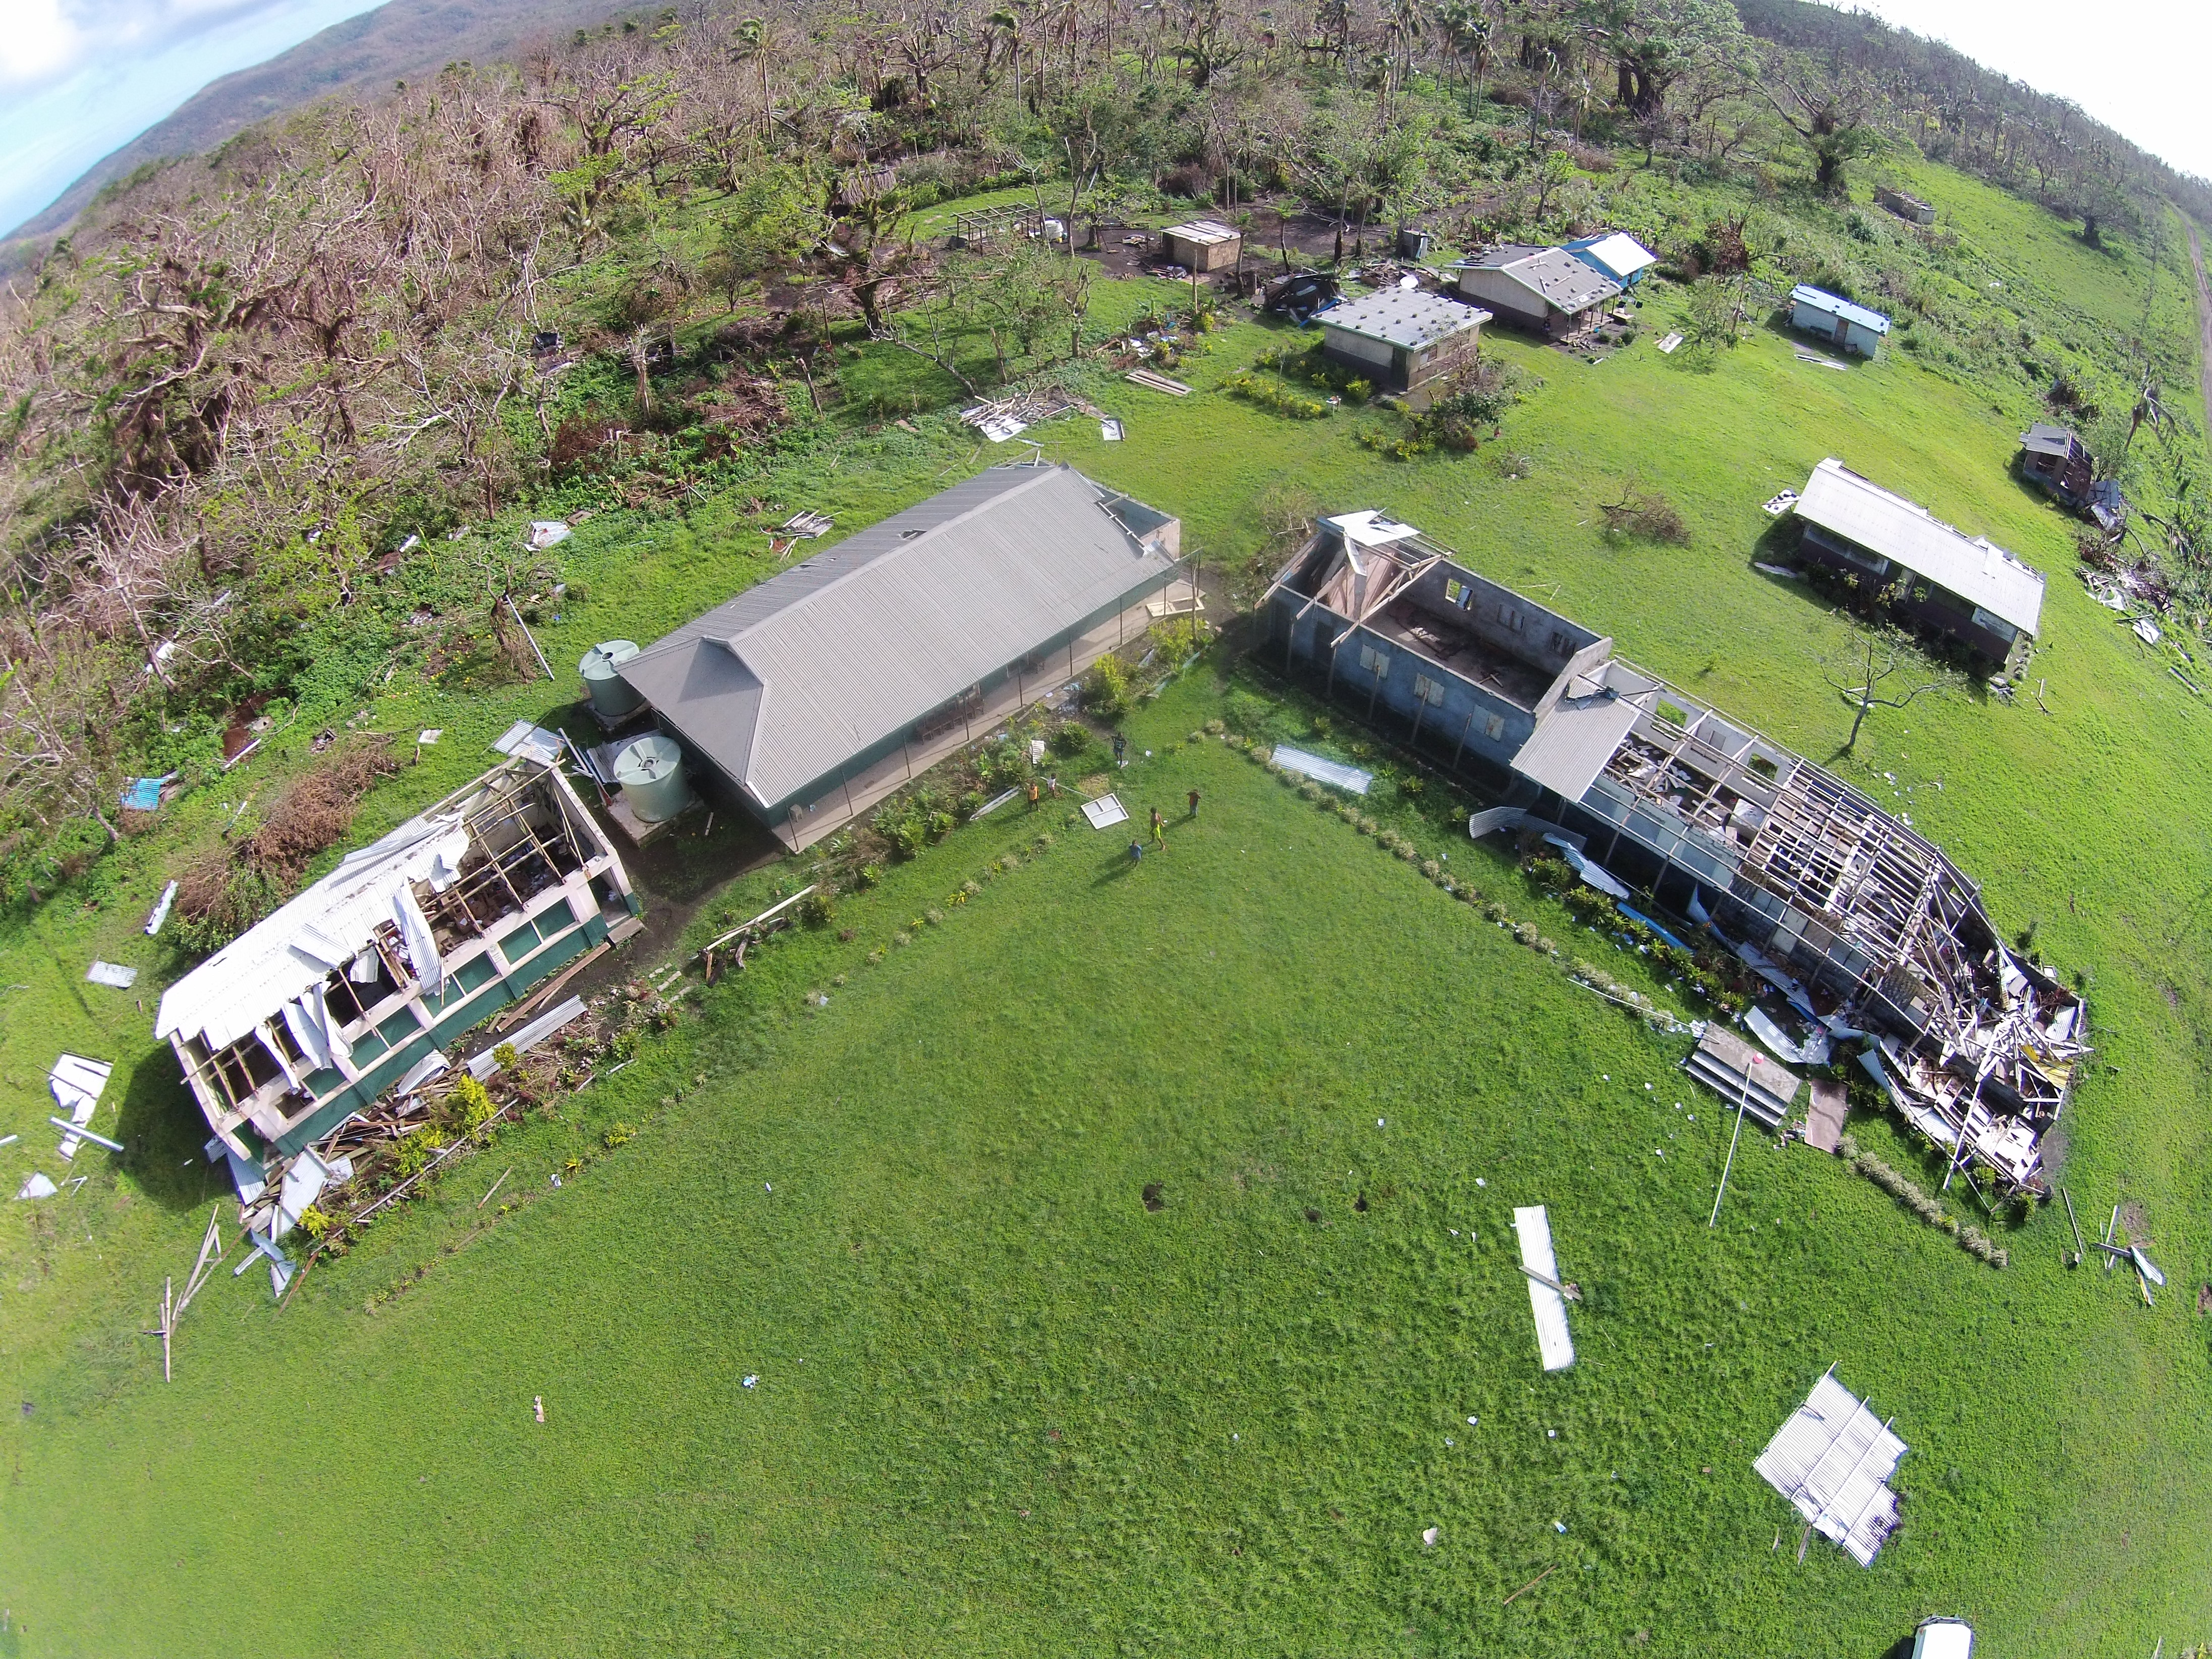 Aerial view of two school buildings with damaged roofs surrounded by debris from an extreme weather event.